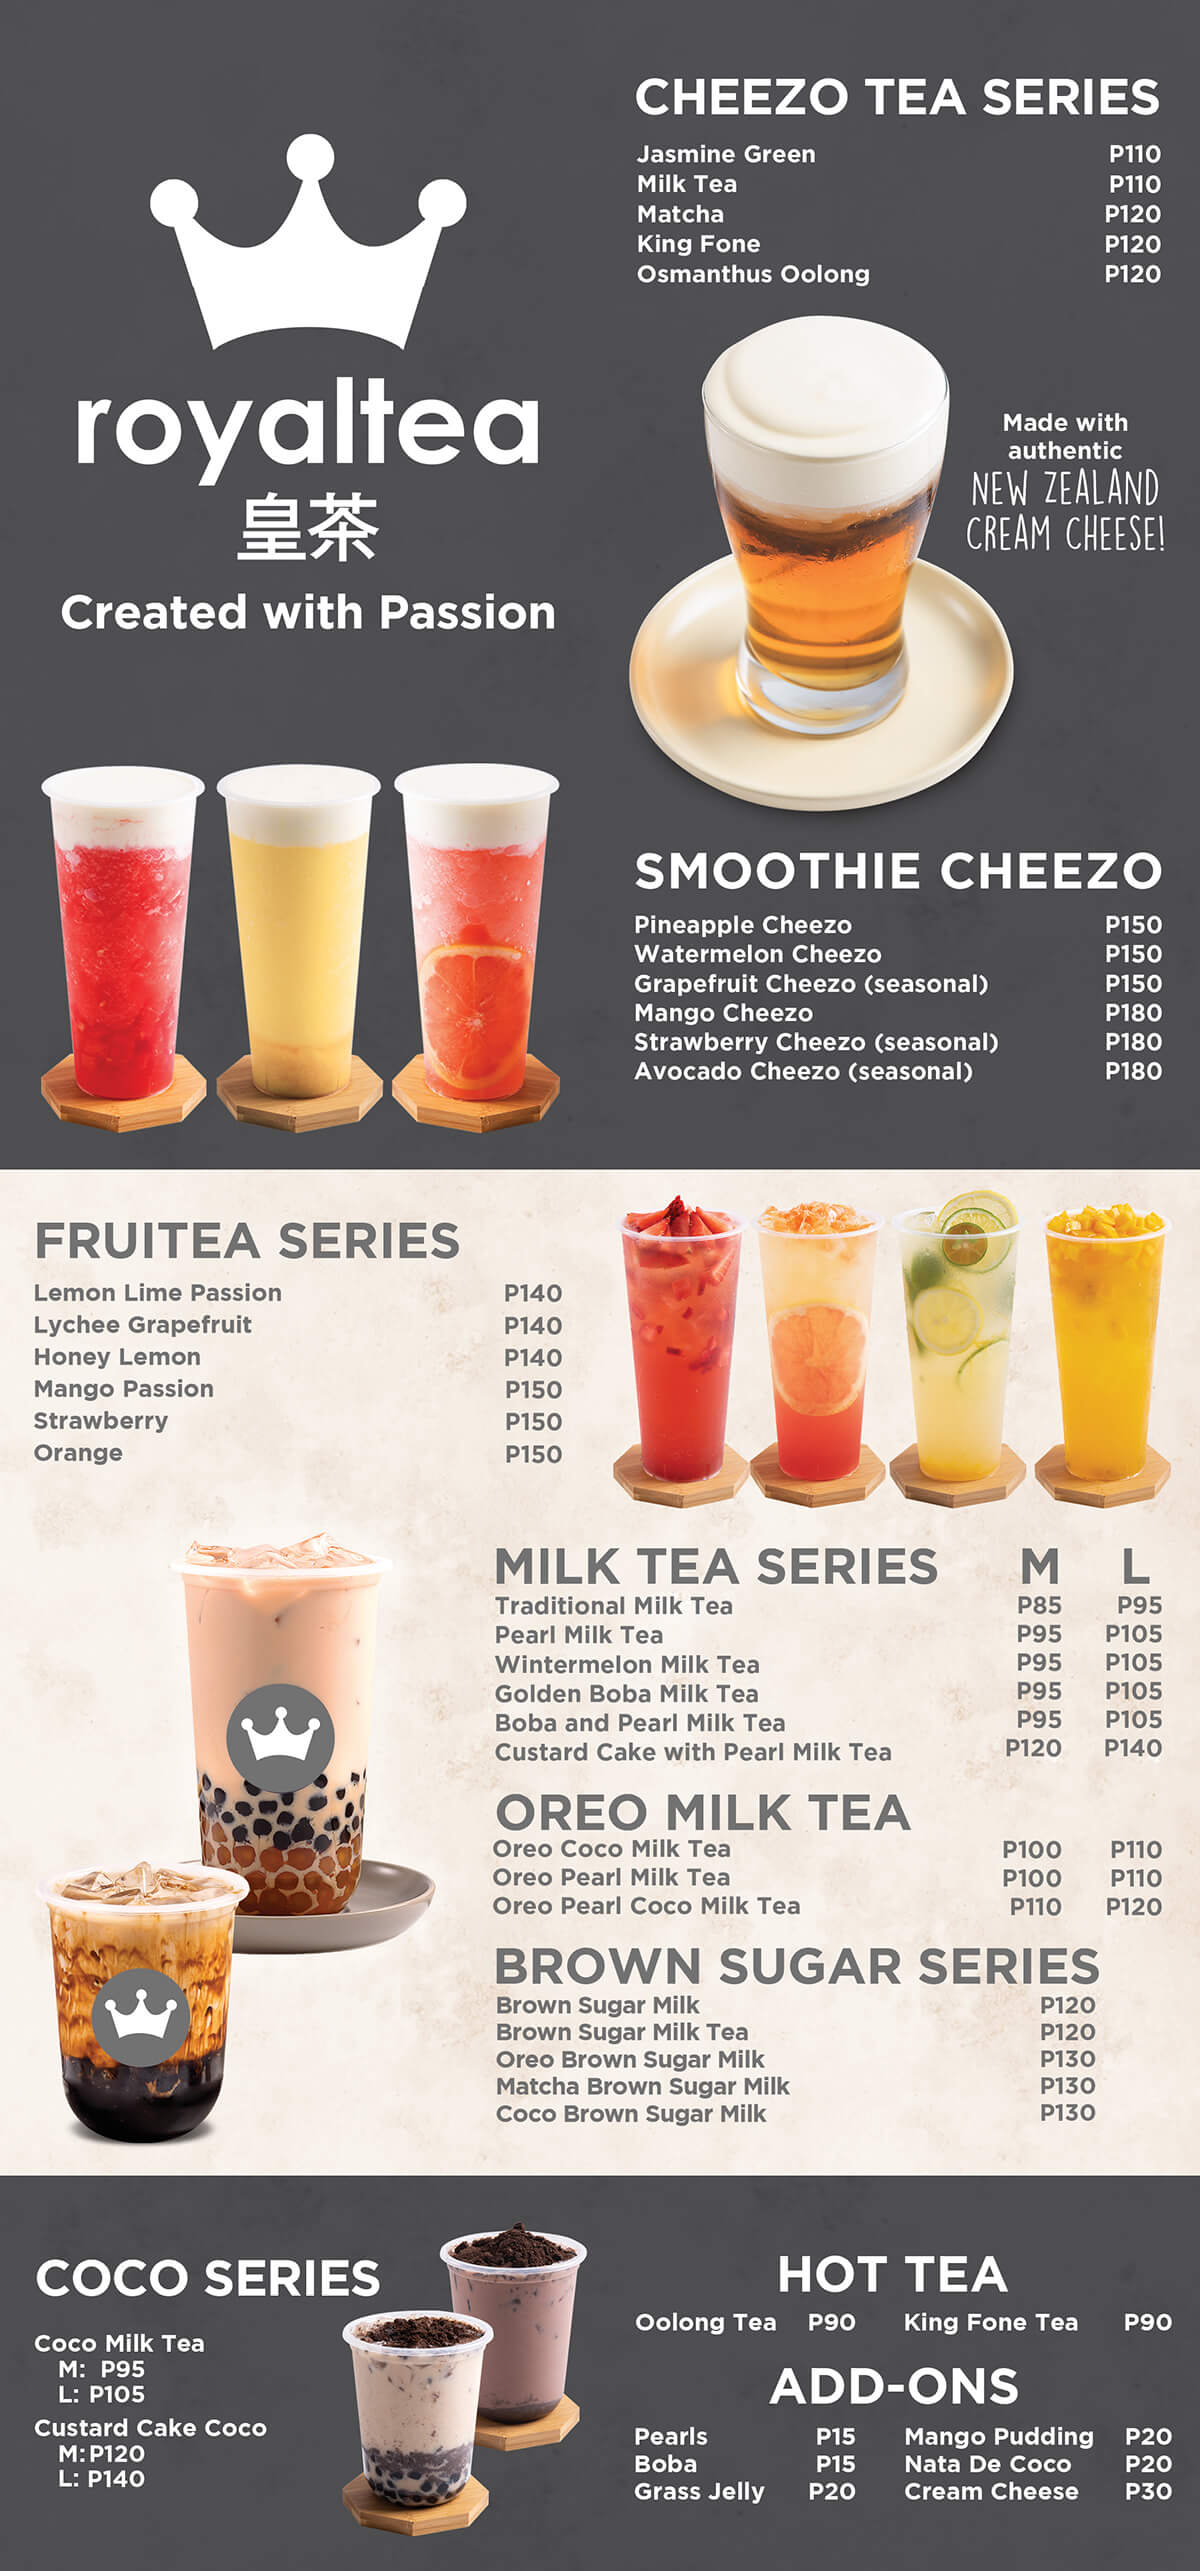 RoyalTea Philippines Opens May 15 in Taft, Manila! - Hungry